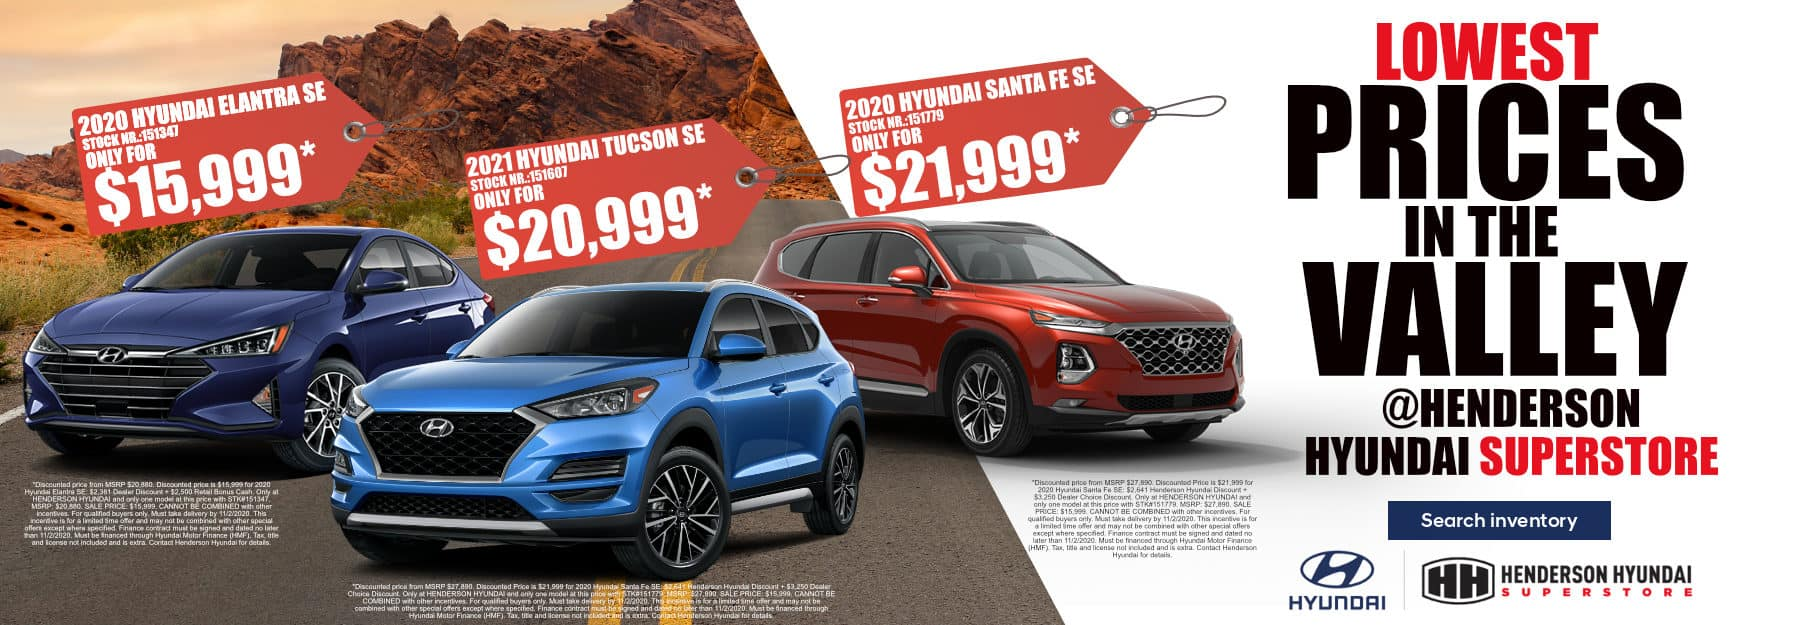 R_October-2020 Lowest Prices in the Valley_Henderson Hyundai